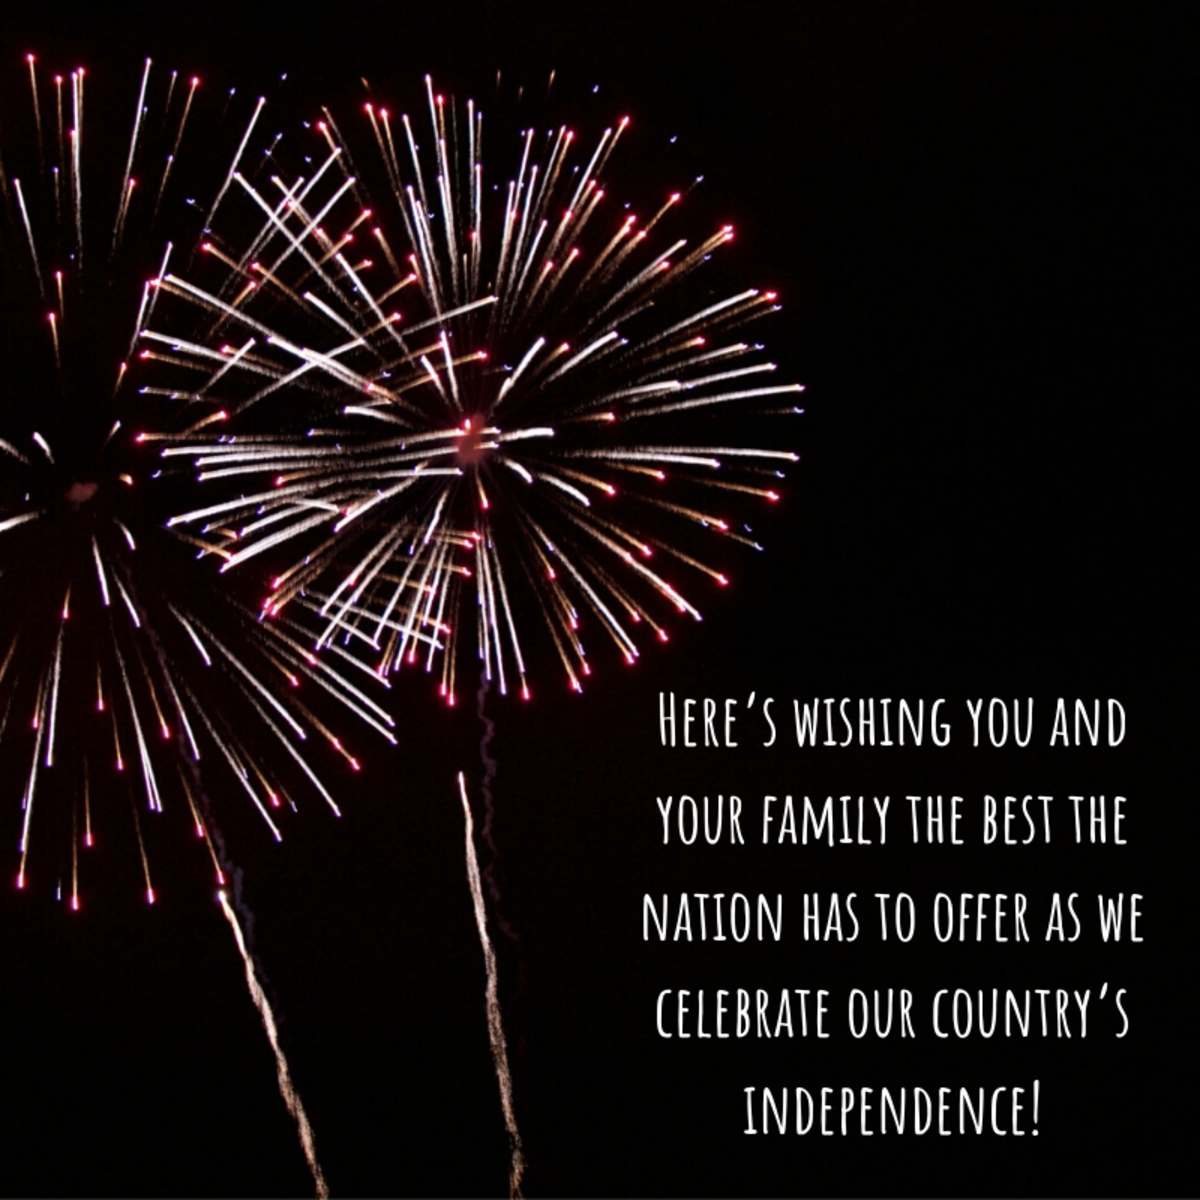 Independence Day greetings should be uplifting, patriotic, and inspirational!